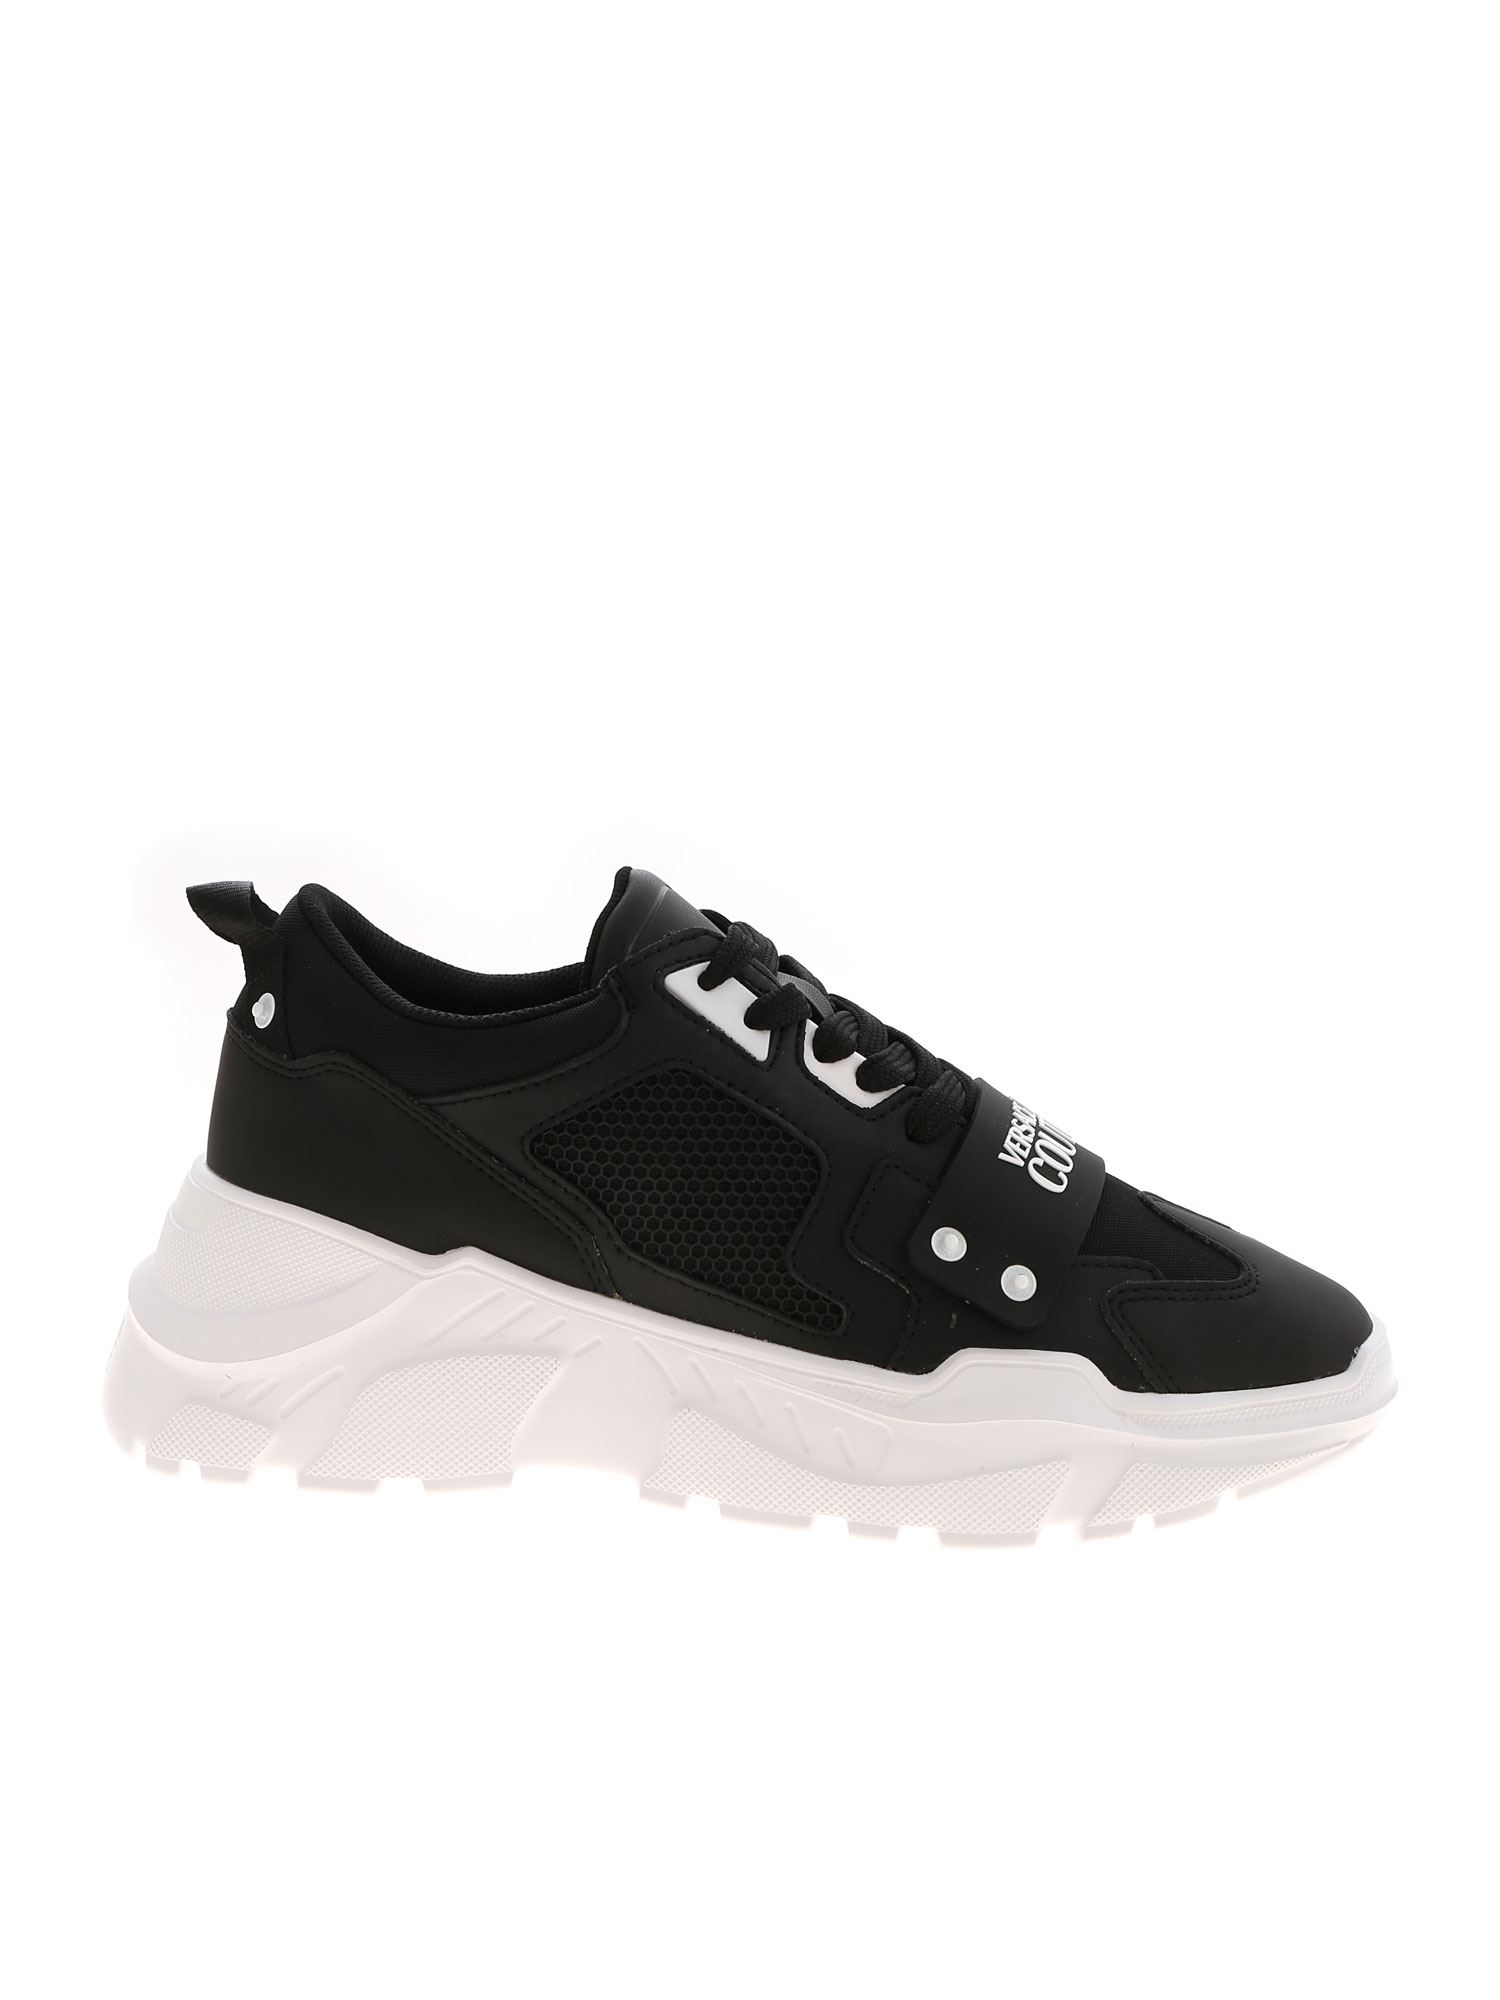 Versace Jeans Couture Sneakers RUBBERIZED LOGO SNEAKERS IN BLACK